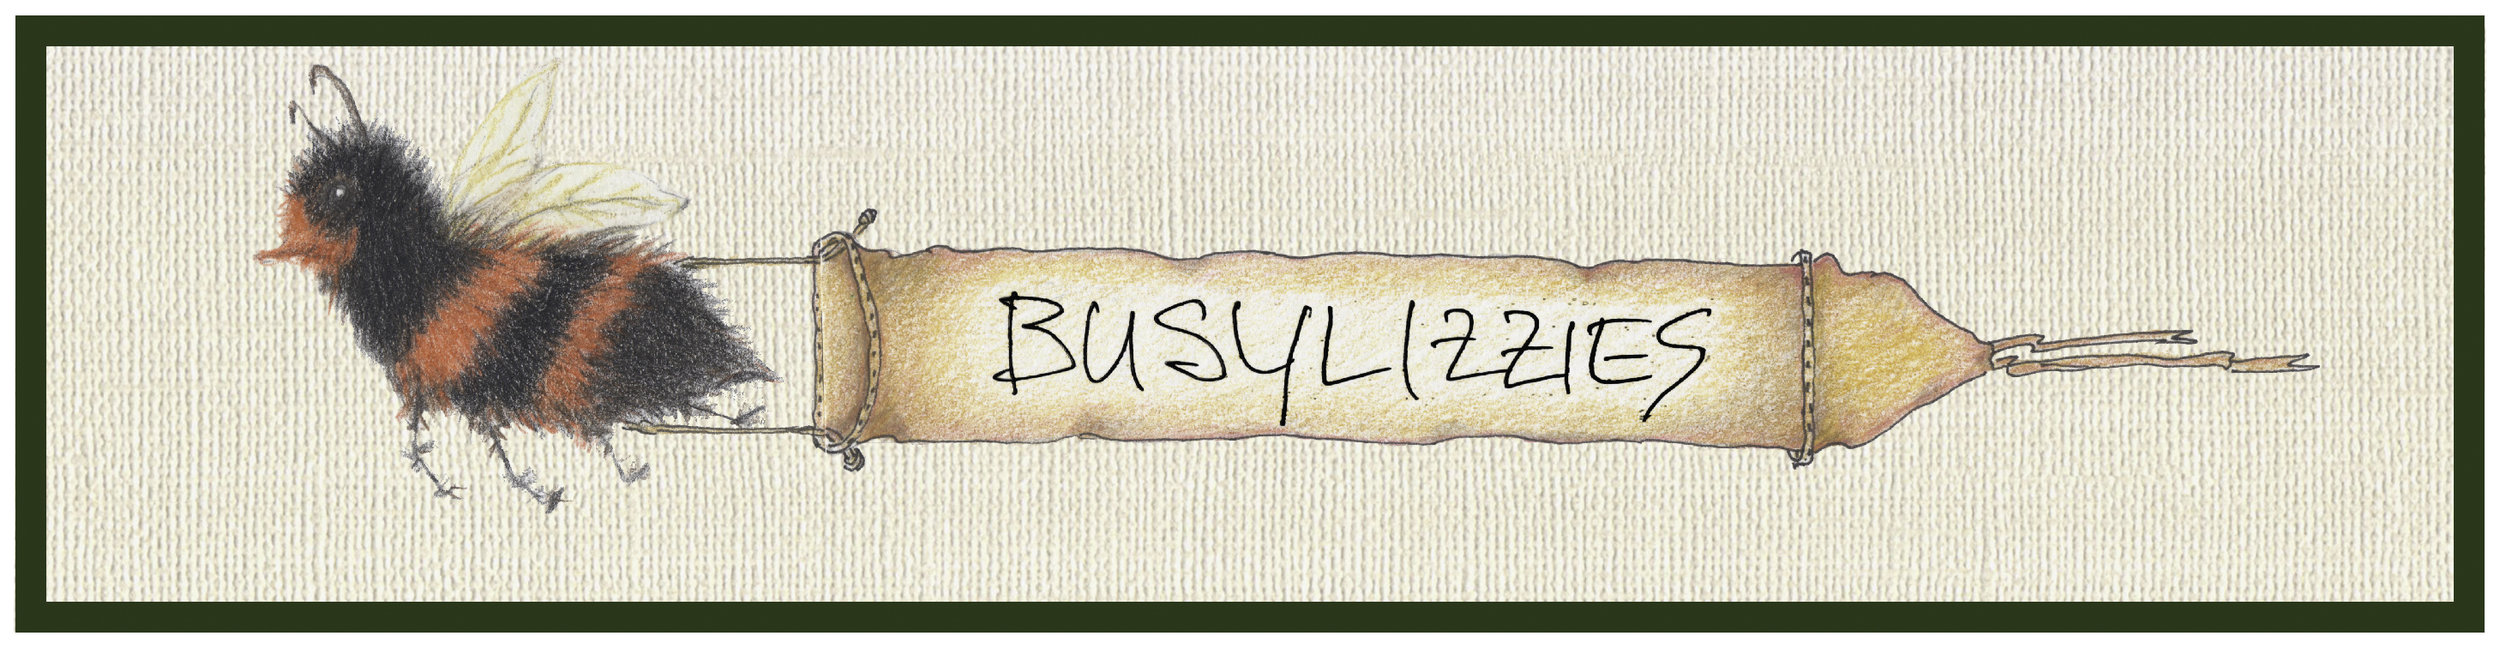 Busy Lizzies Canvas Banner v2.jpg